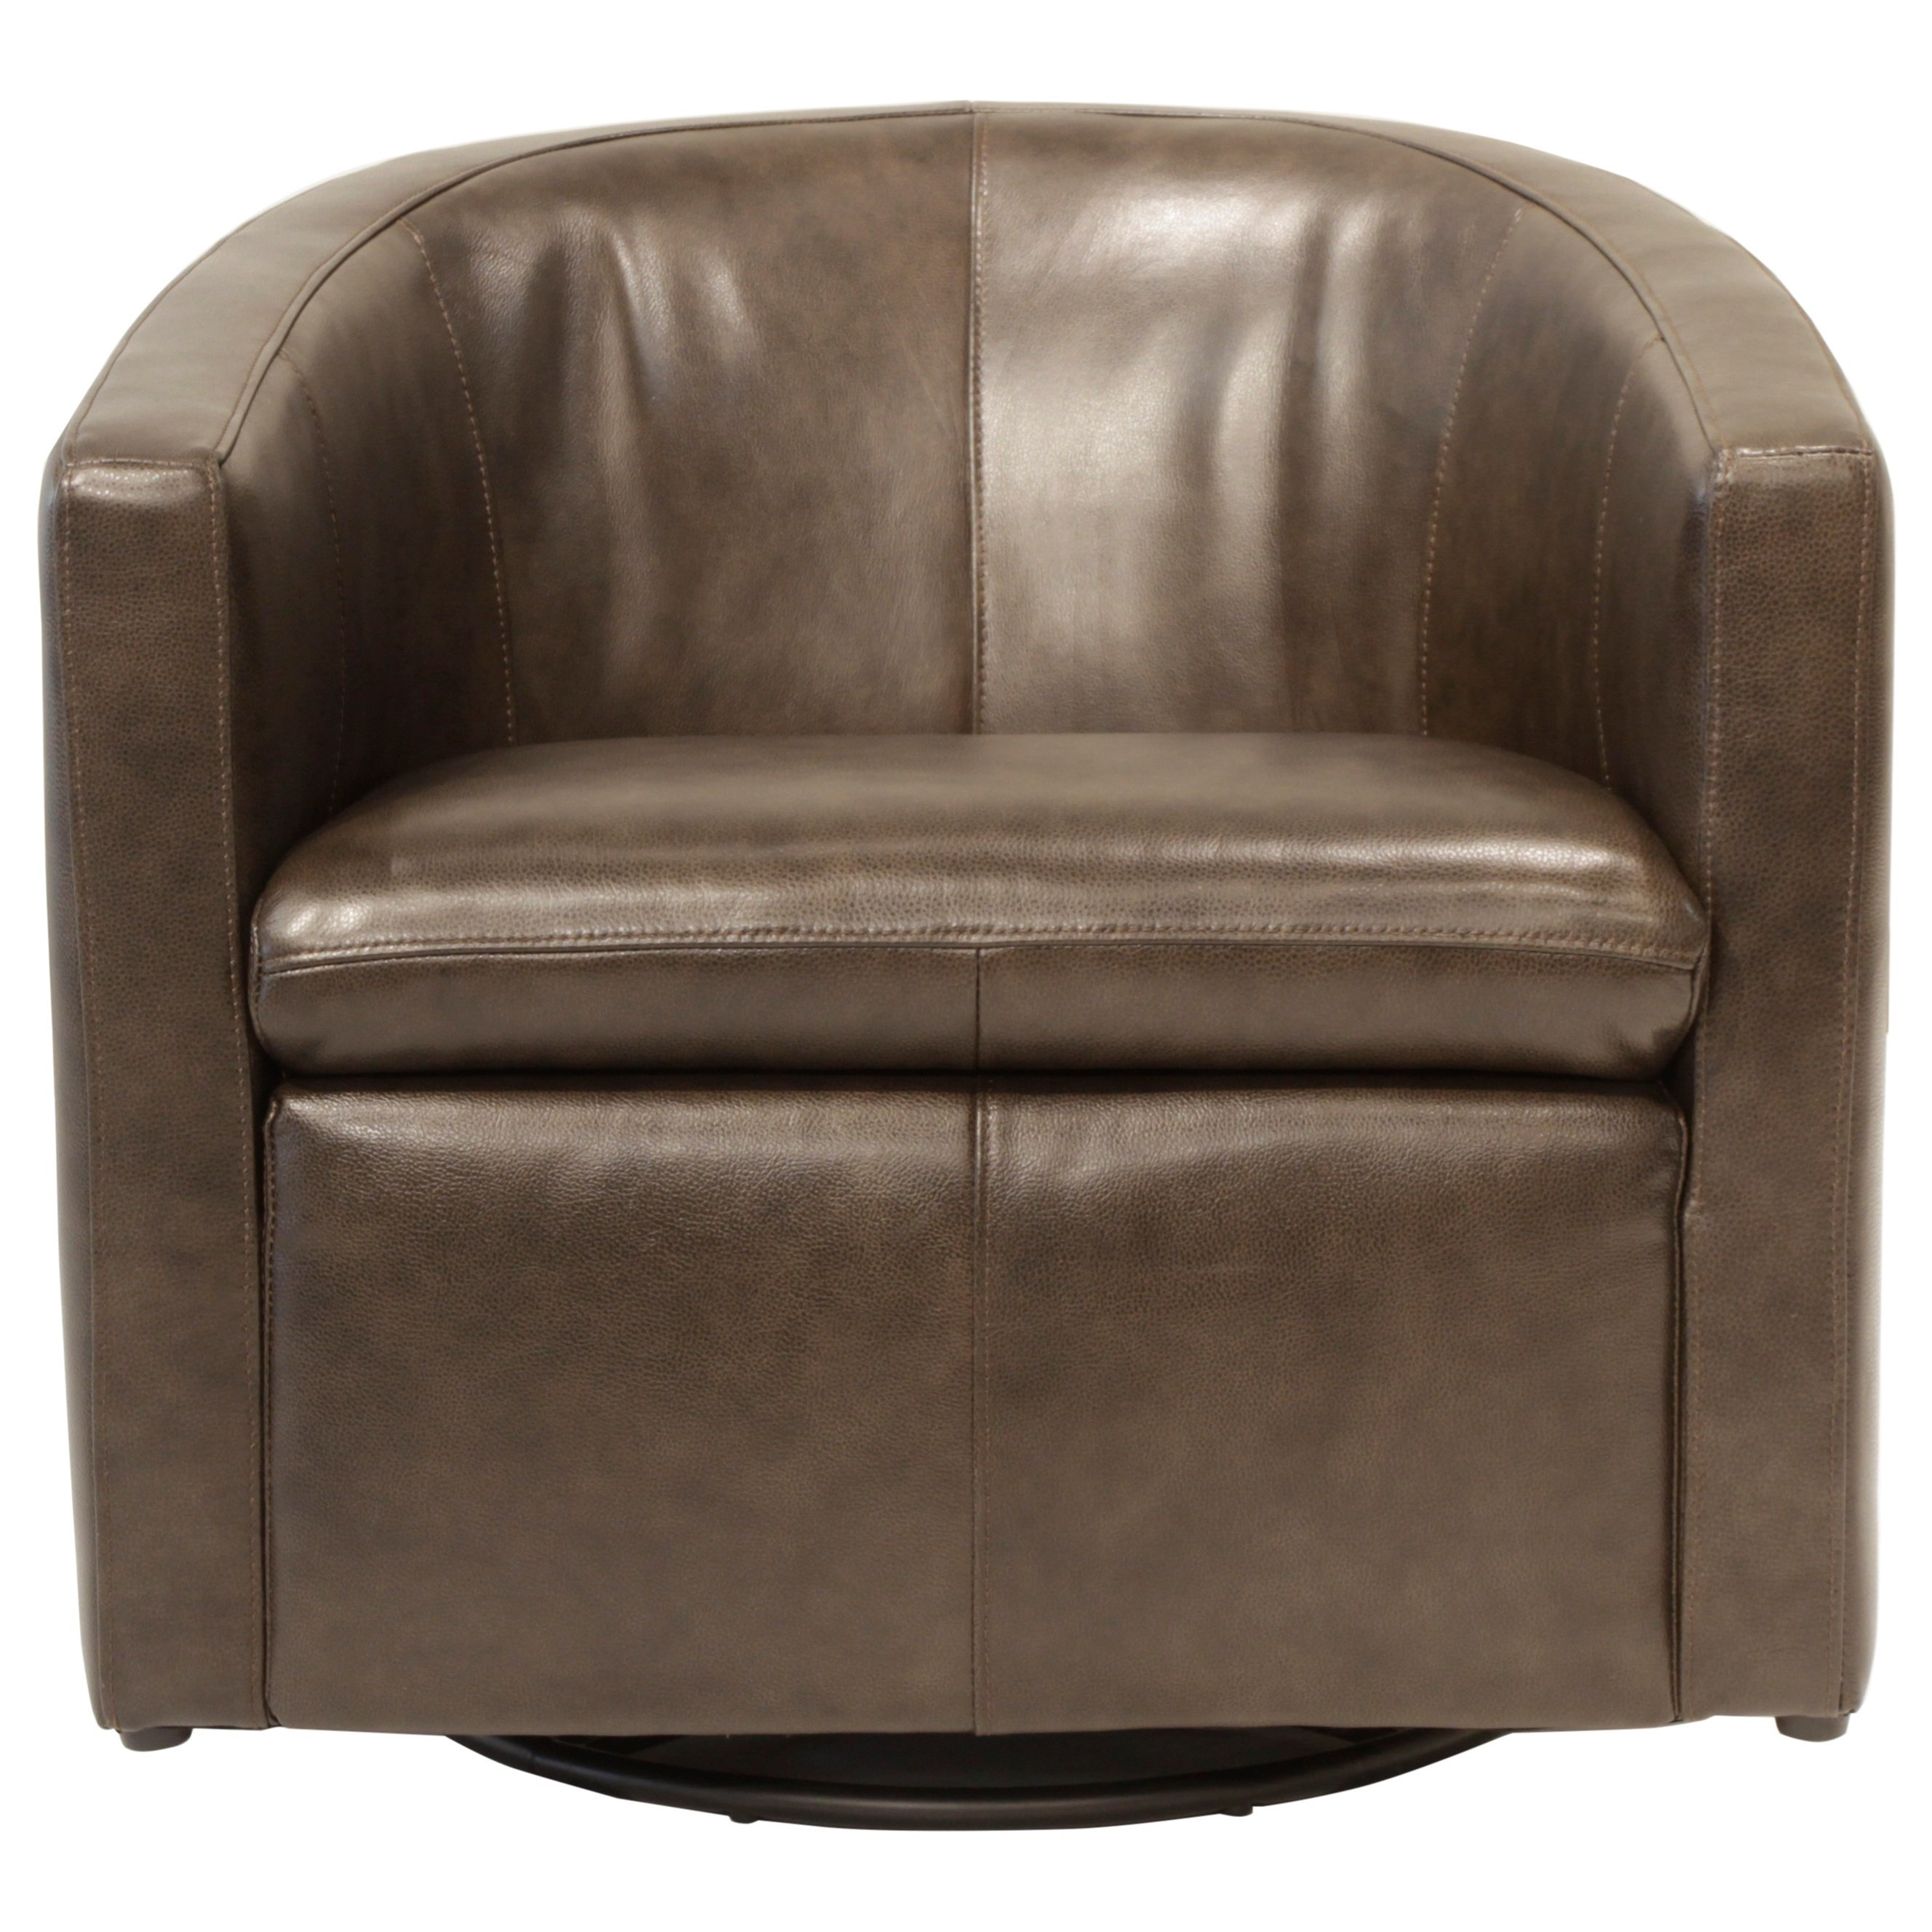 Futura Leather Arcadia Swivel Glider Chair - Item Number: M1393-340-1425S